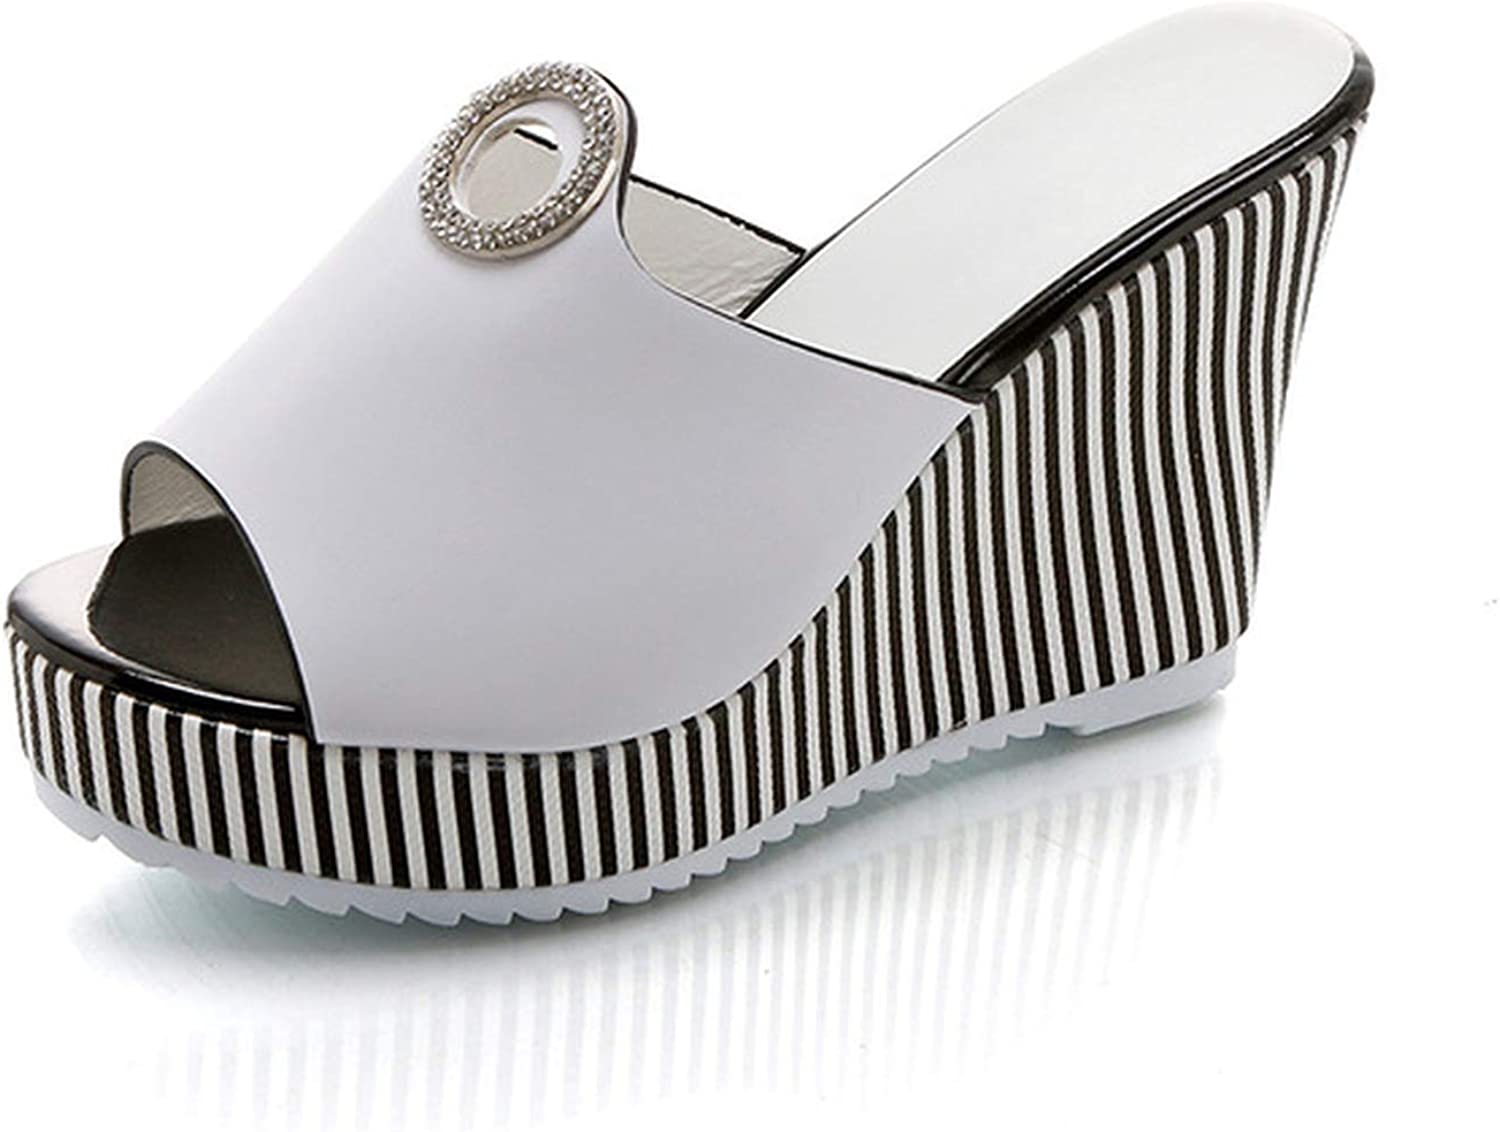 GEKX Women shoes Woman Slippers Slides Fashion Sexy Buckle Platform shoes Striped High Heels Wedges Ladies shoes